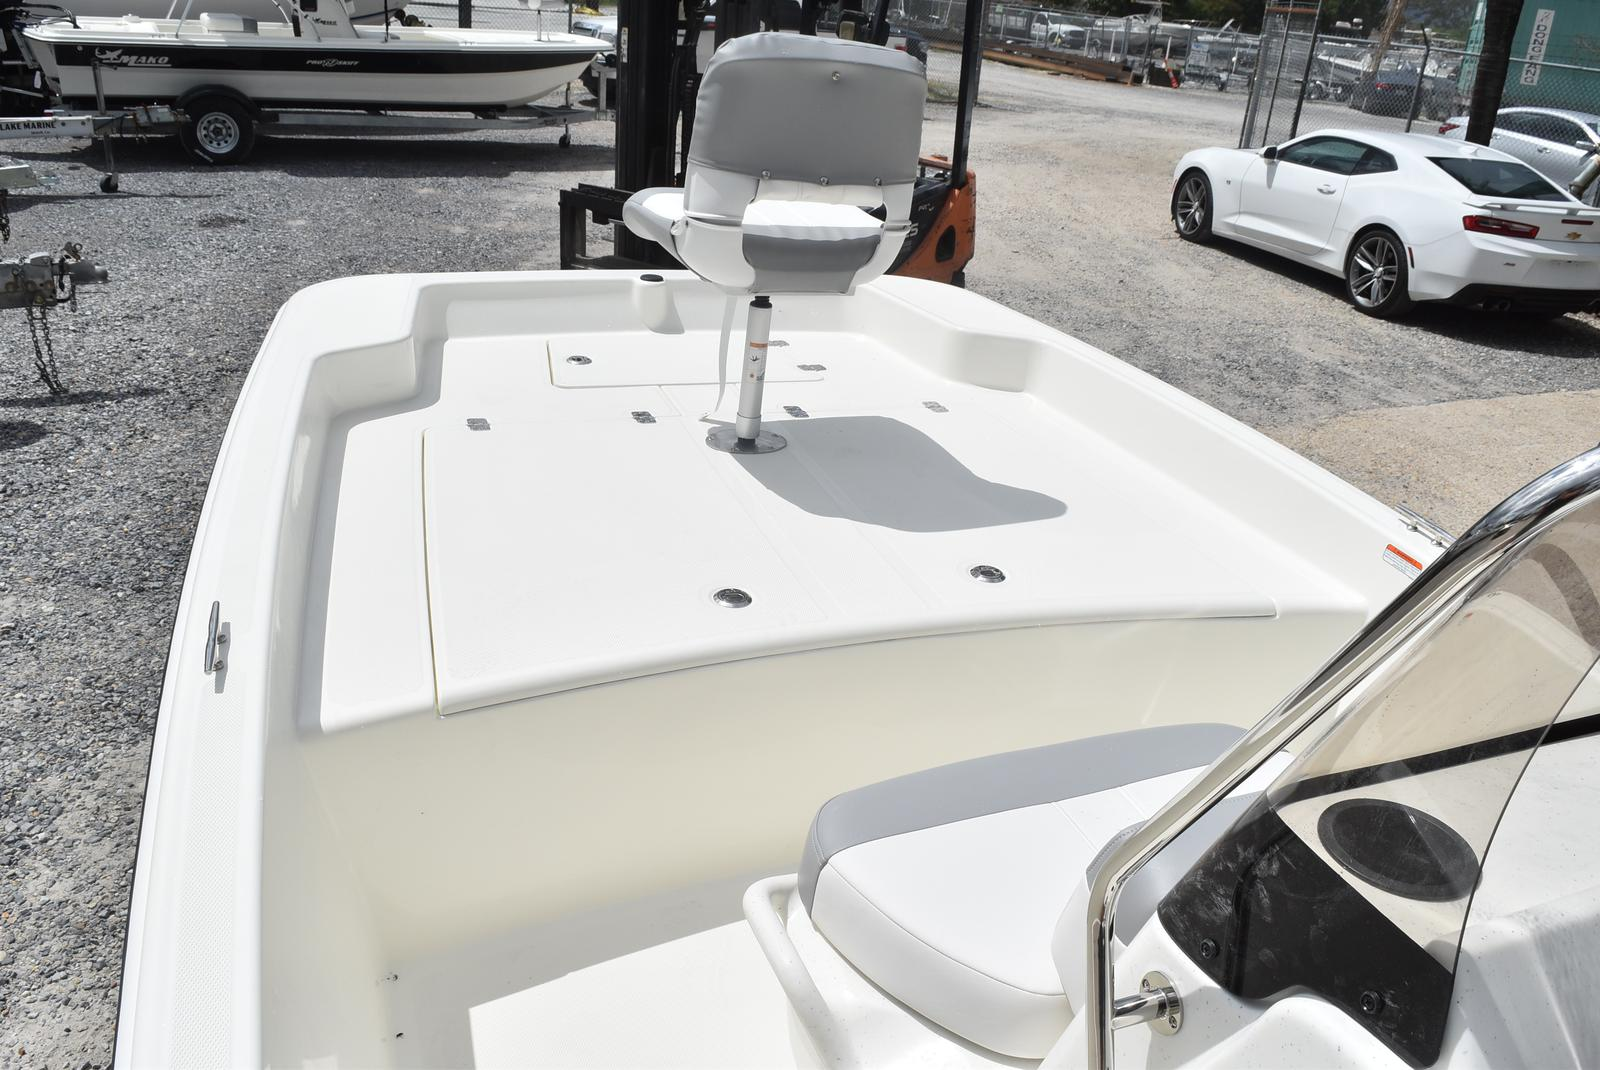 2020 Mako boat for sale, model of the boat is Pro Skiff 17, 75 ELPT & Image # 412 of 702